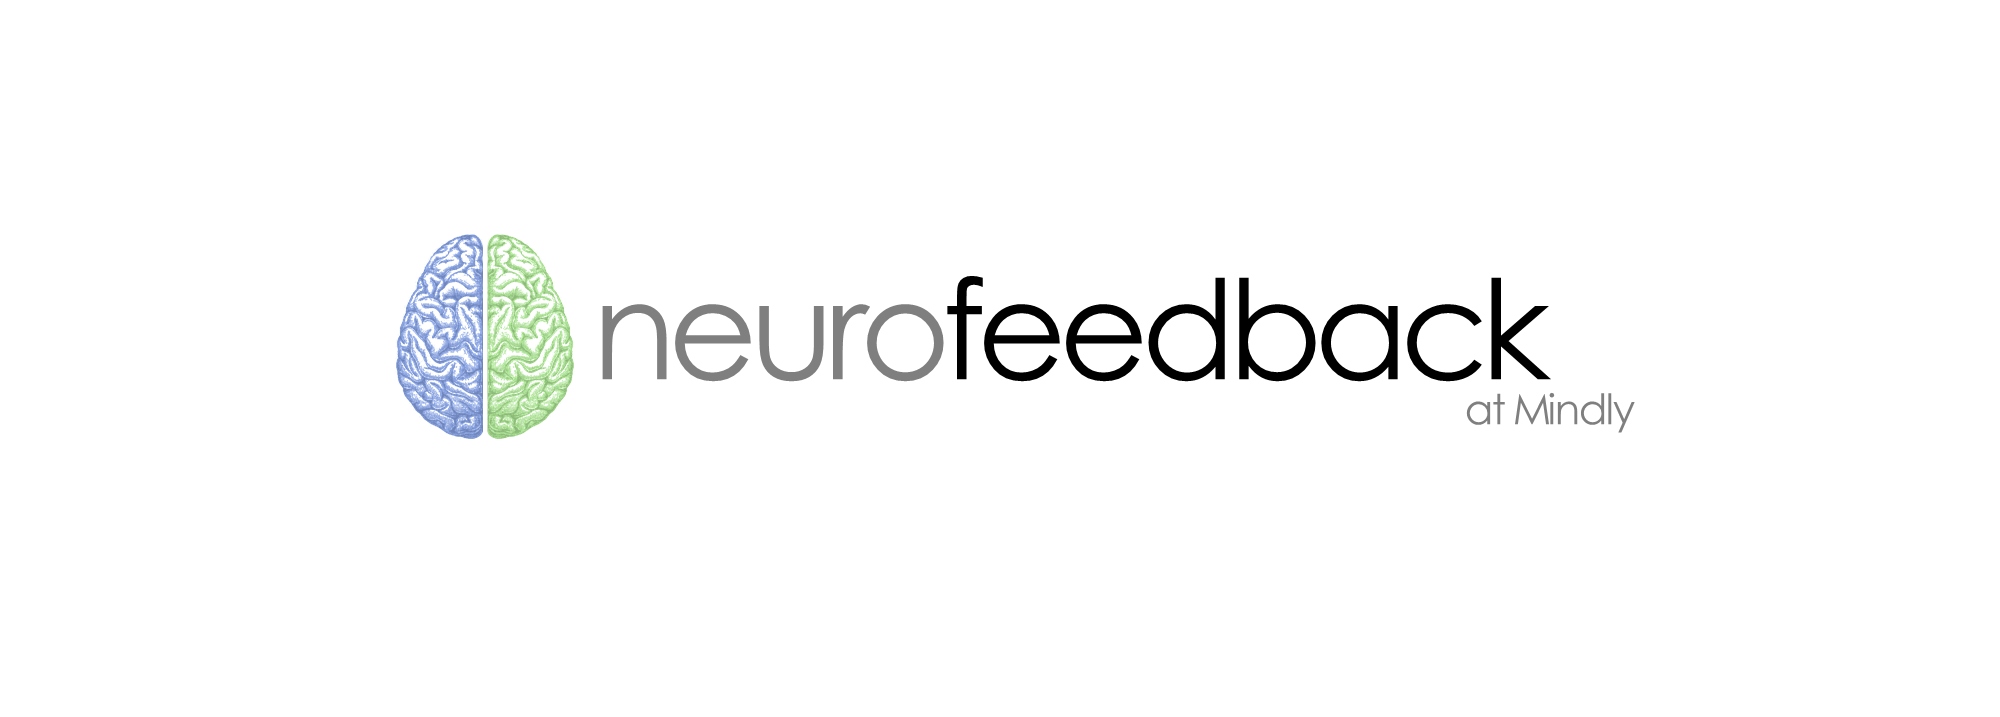 neurofeedback in Raleigh NC